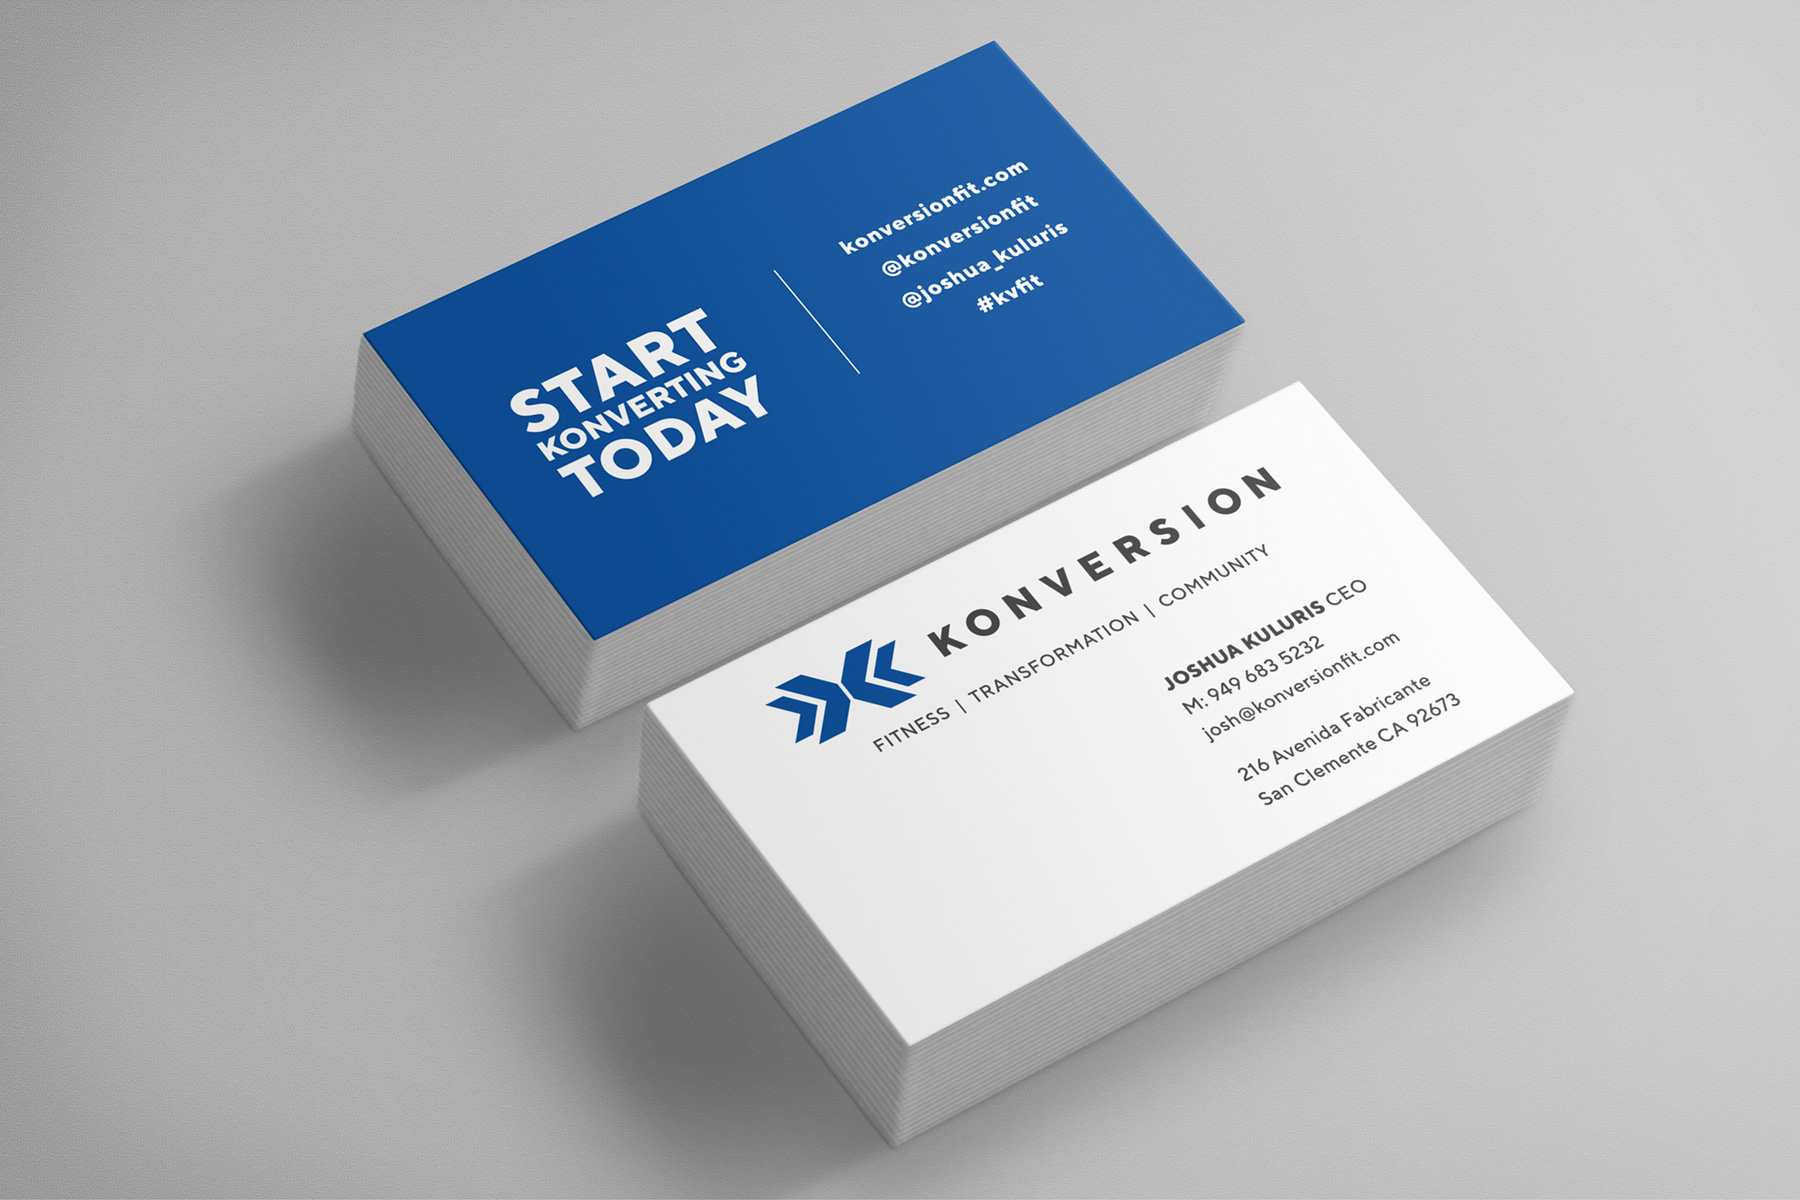 LDD WORK Konversion Business Card